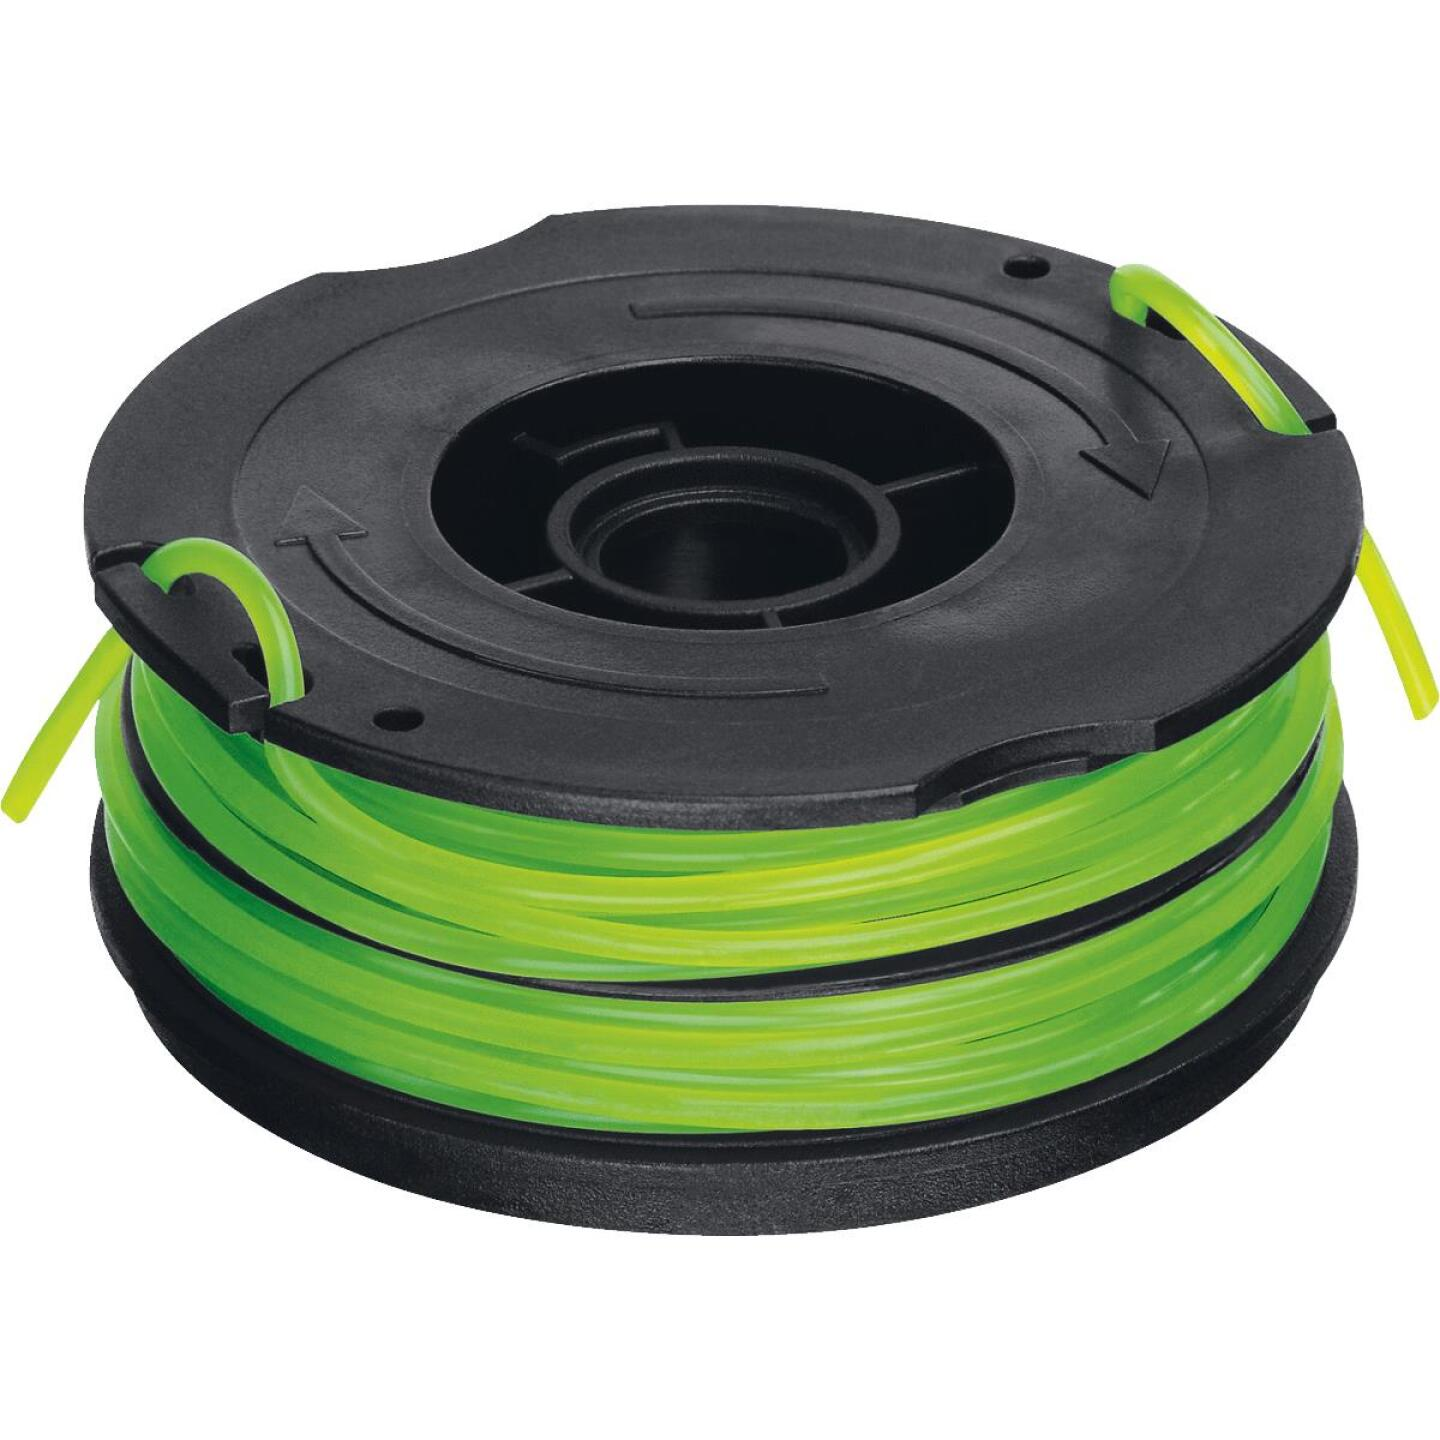 Black & Decker 0.080 In. x 30 Ft. Dual Trimmer Line Spool Image 1